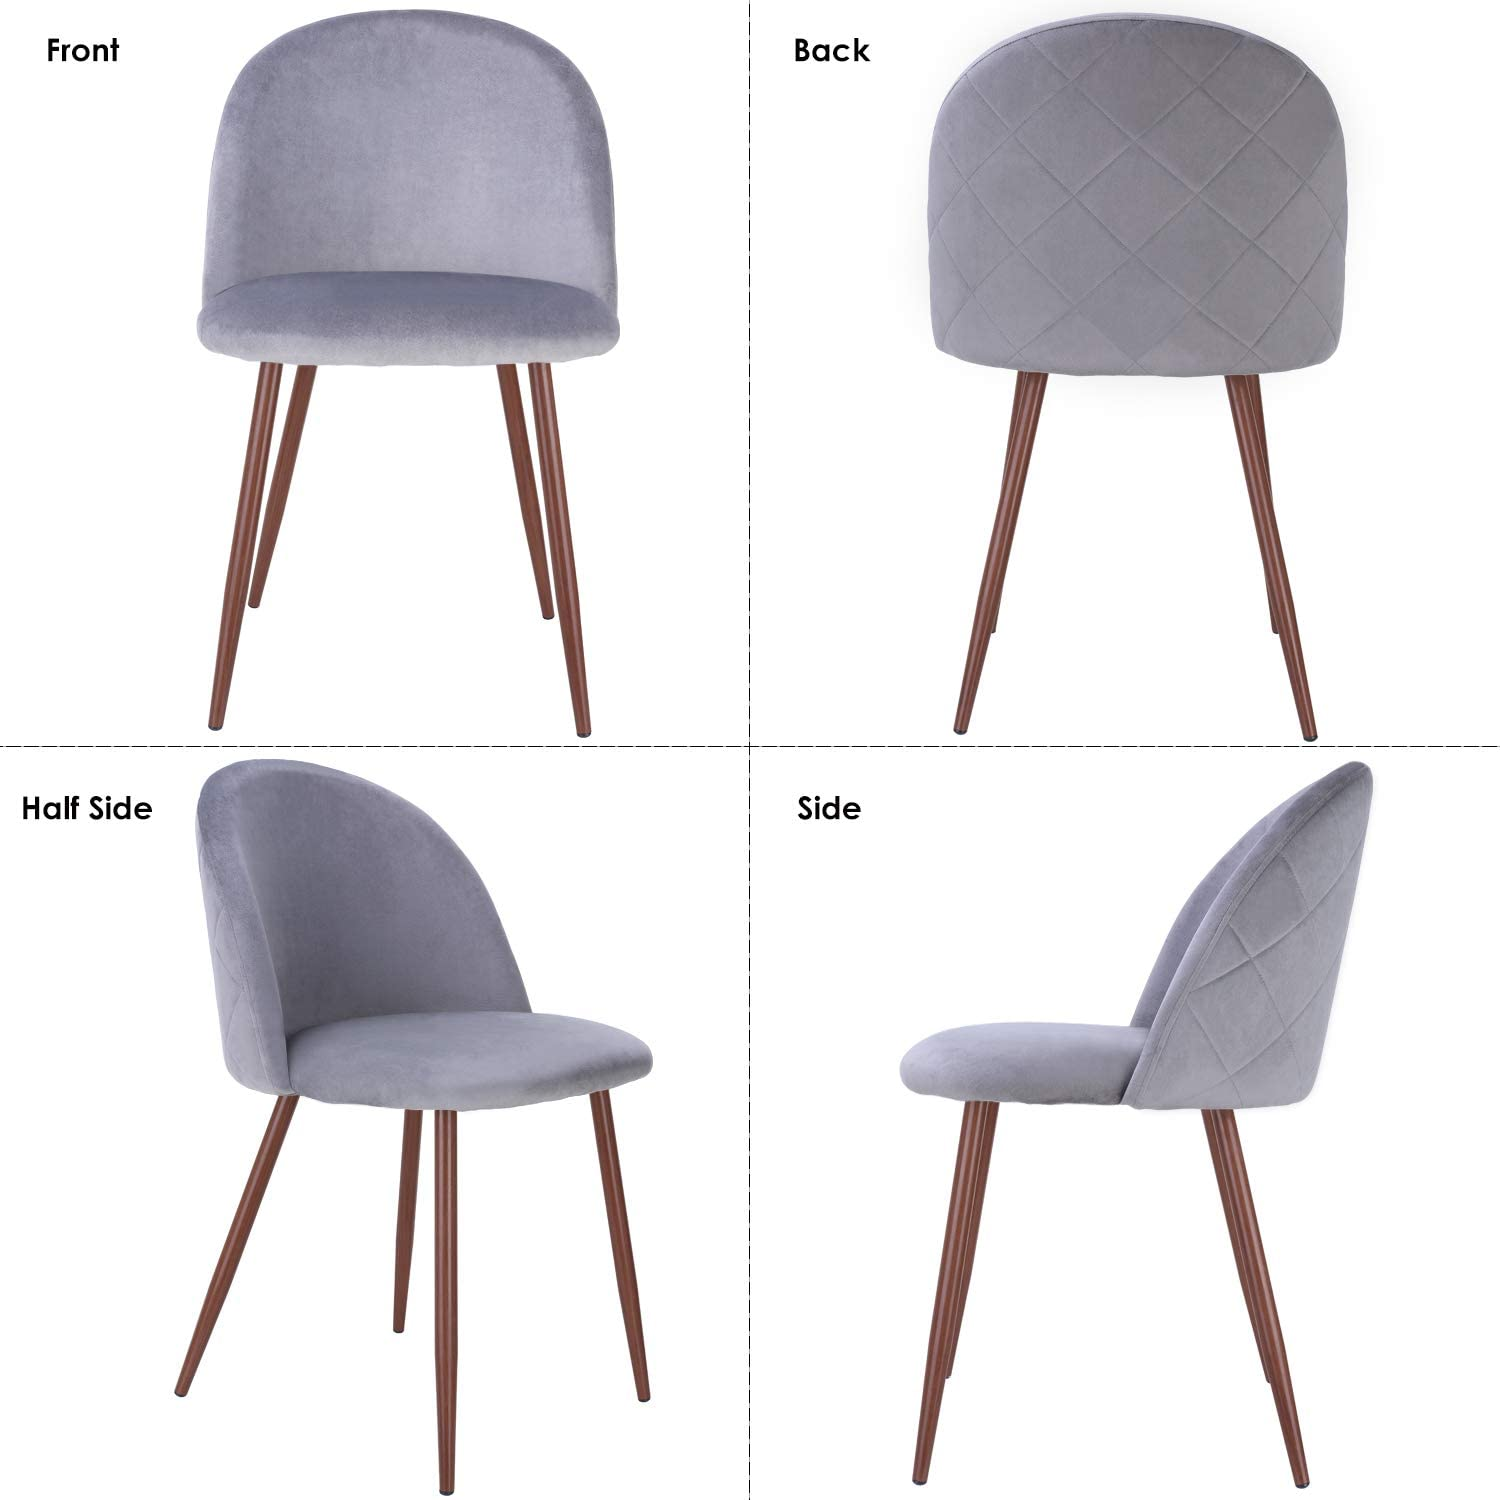 Velvet Upholstered Side Chair HOMECHO Dining Chairs Set of 2 Gray Modern Accent/Leisure/Chairs/with/Metal/Legs for/Kitchen//Living//Dining Room